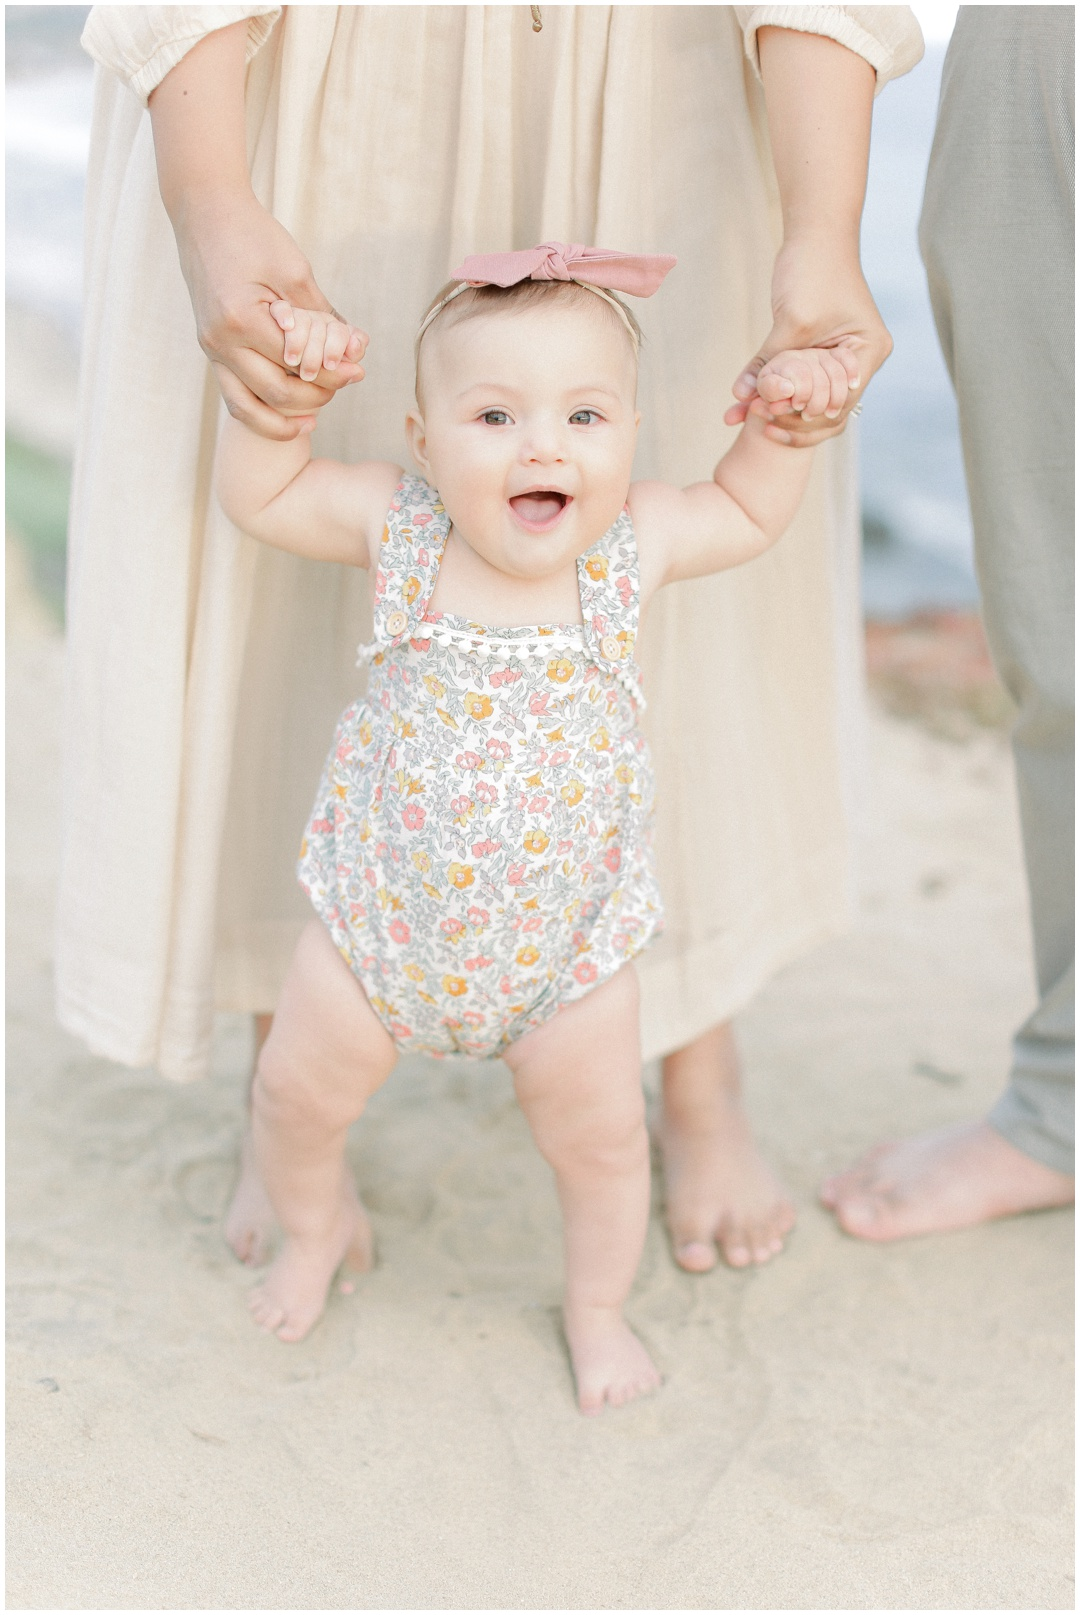 Newport_Beach_Newborn_Light_Airy_Natural_Photographer_Newport_Beach_Photographer_Orange_County_Family_Photographer_Cori_Kleckner_Photography_Huntington_Beach_Photographer_Family_OC_Newborn_Natalie_Nunez_Thomas_Nunez_Natalie_Roca_Rosh_Nunez_Family_3544.jpg